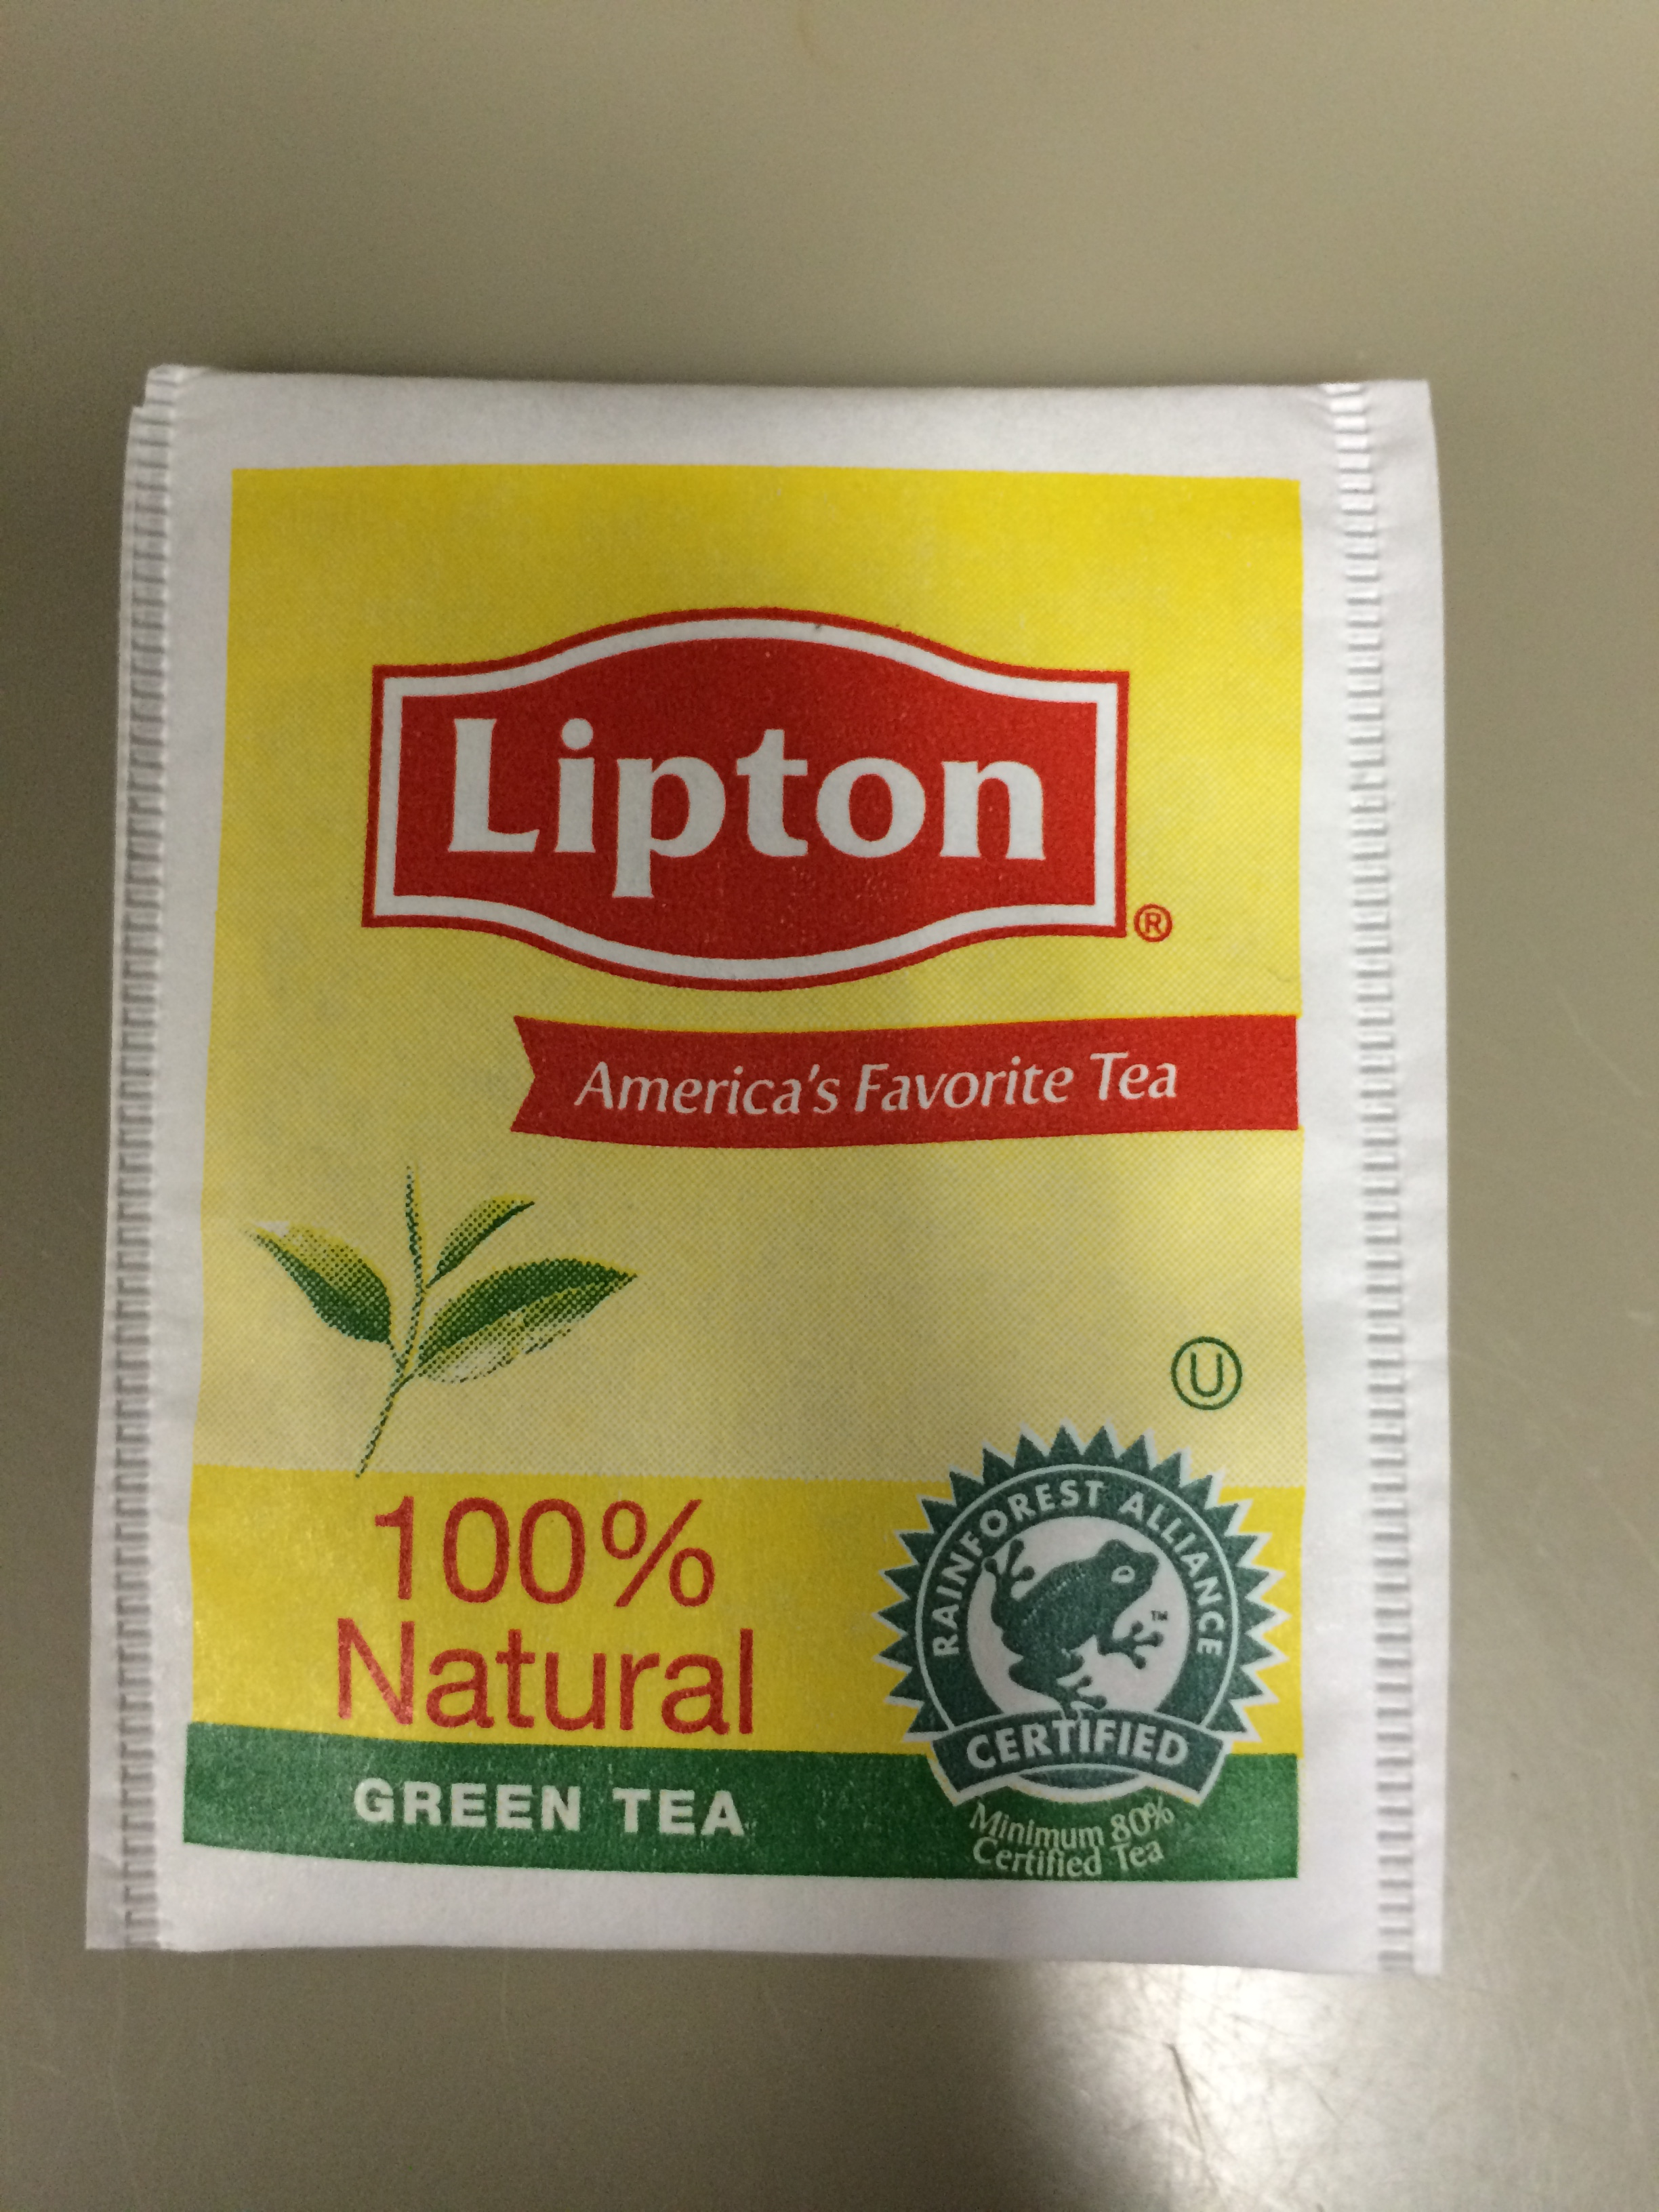 Bad Idea: Drinking Lipton Tea on an Empty Stomach | Feeling Sick & Nauseated